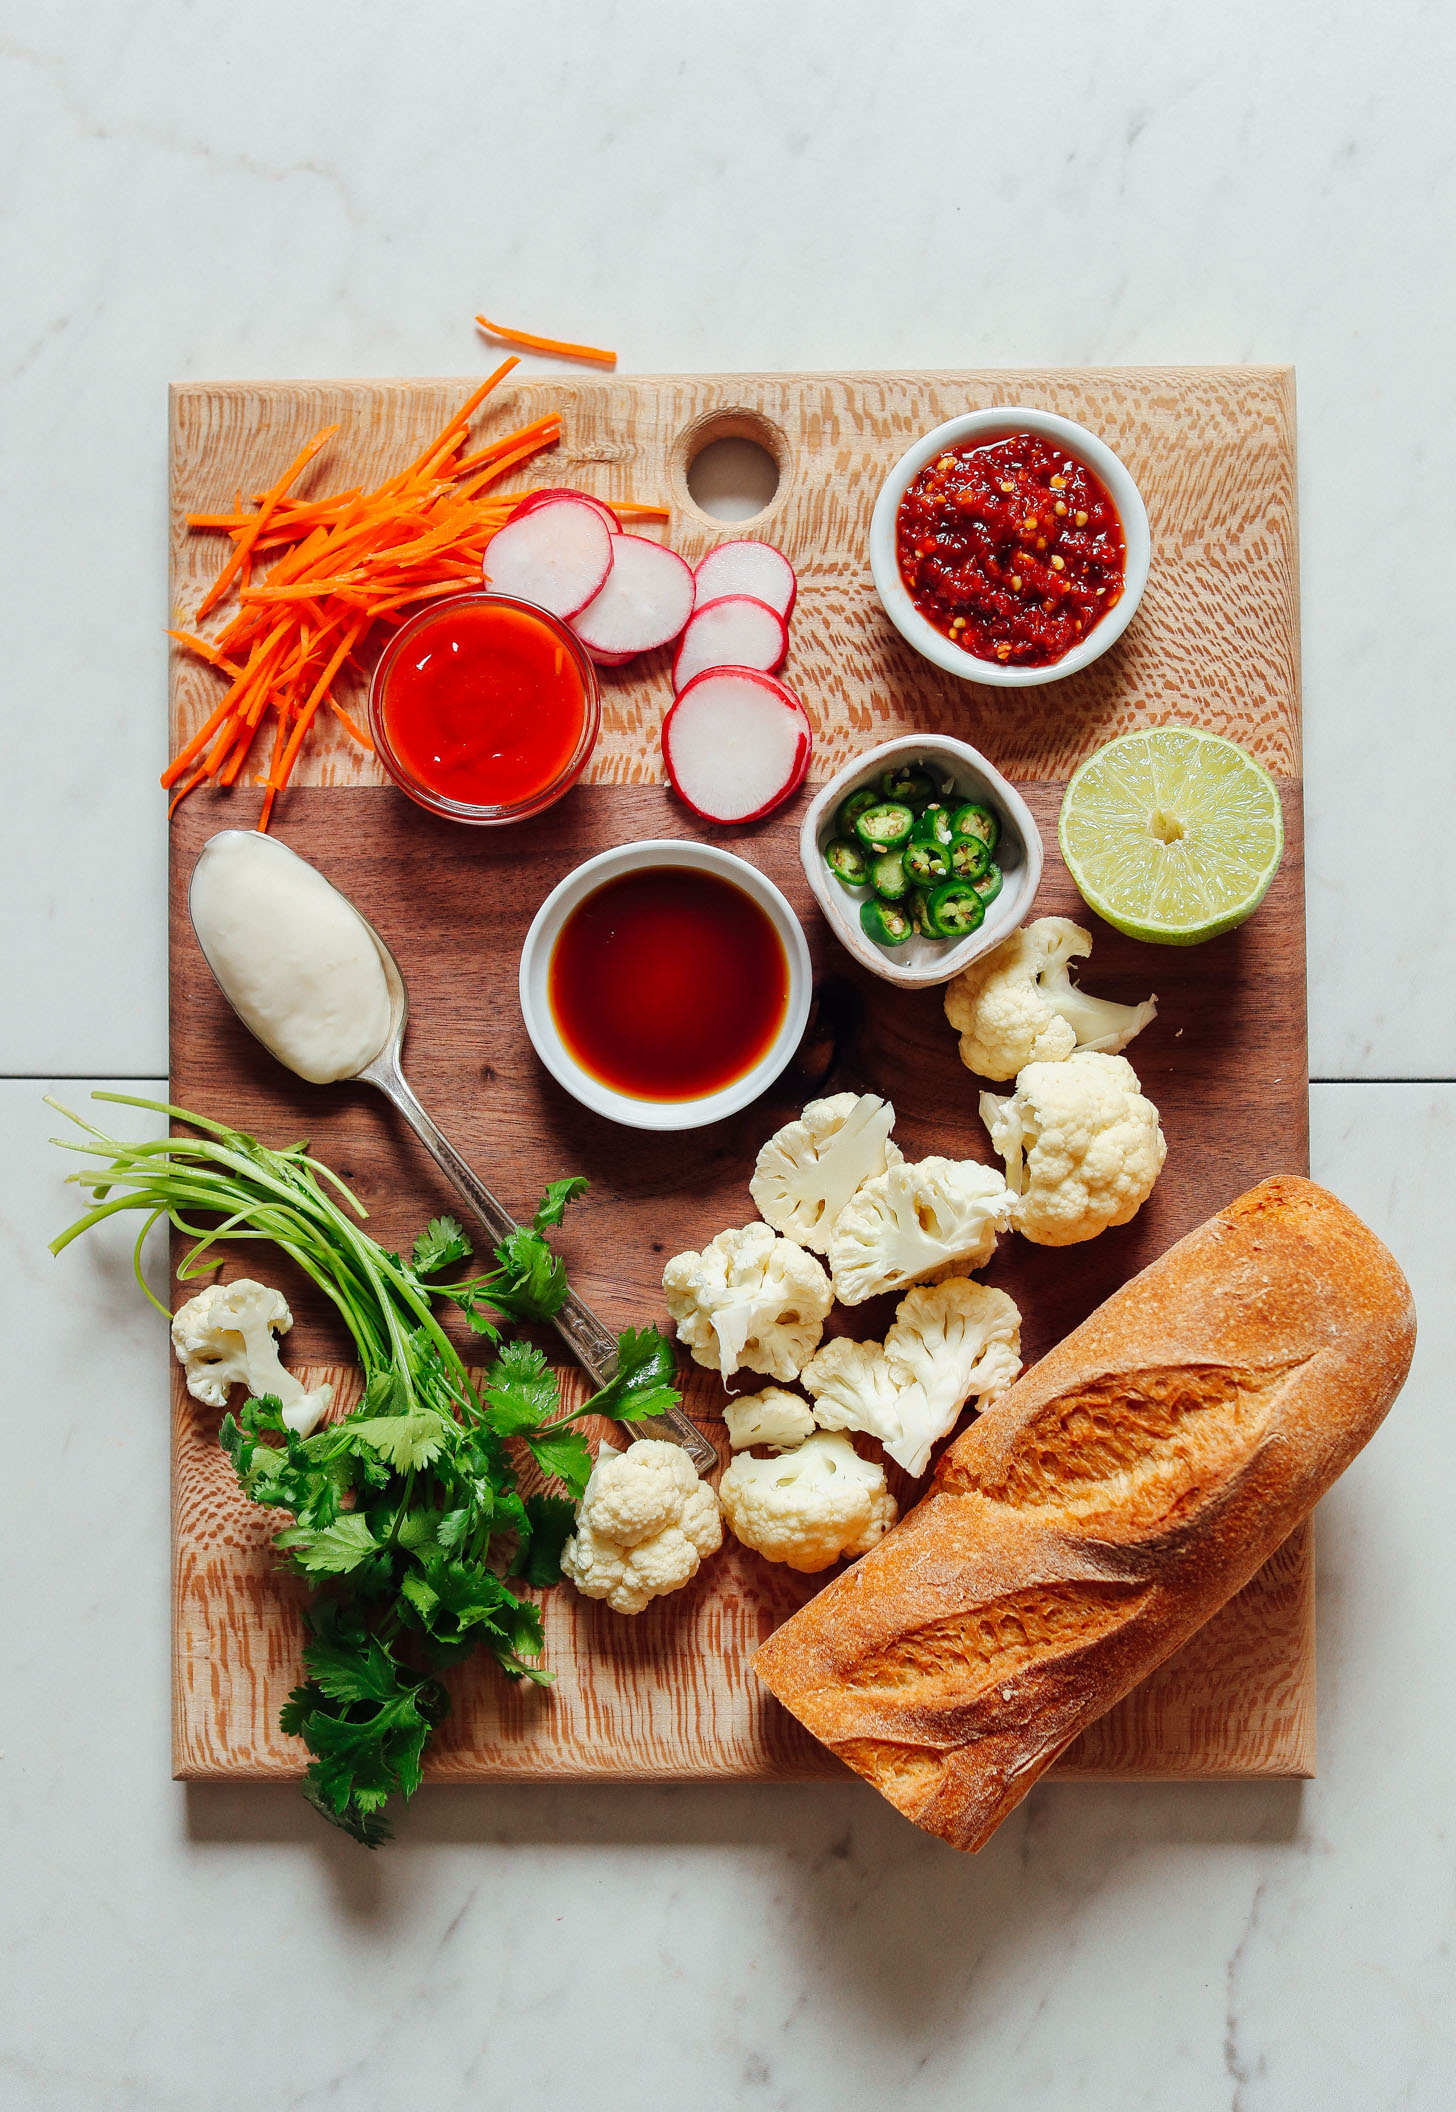 Wood cutting board filled with ingredients for making our Cauliflower Banh Mi recipe